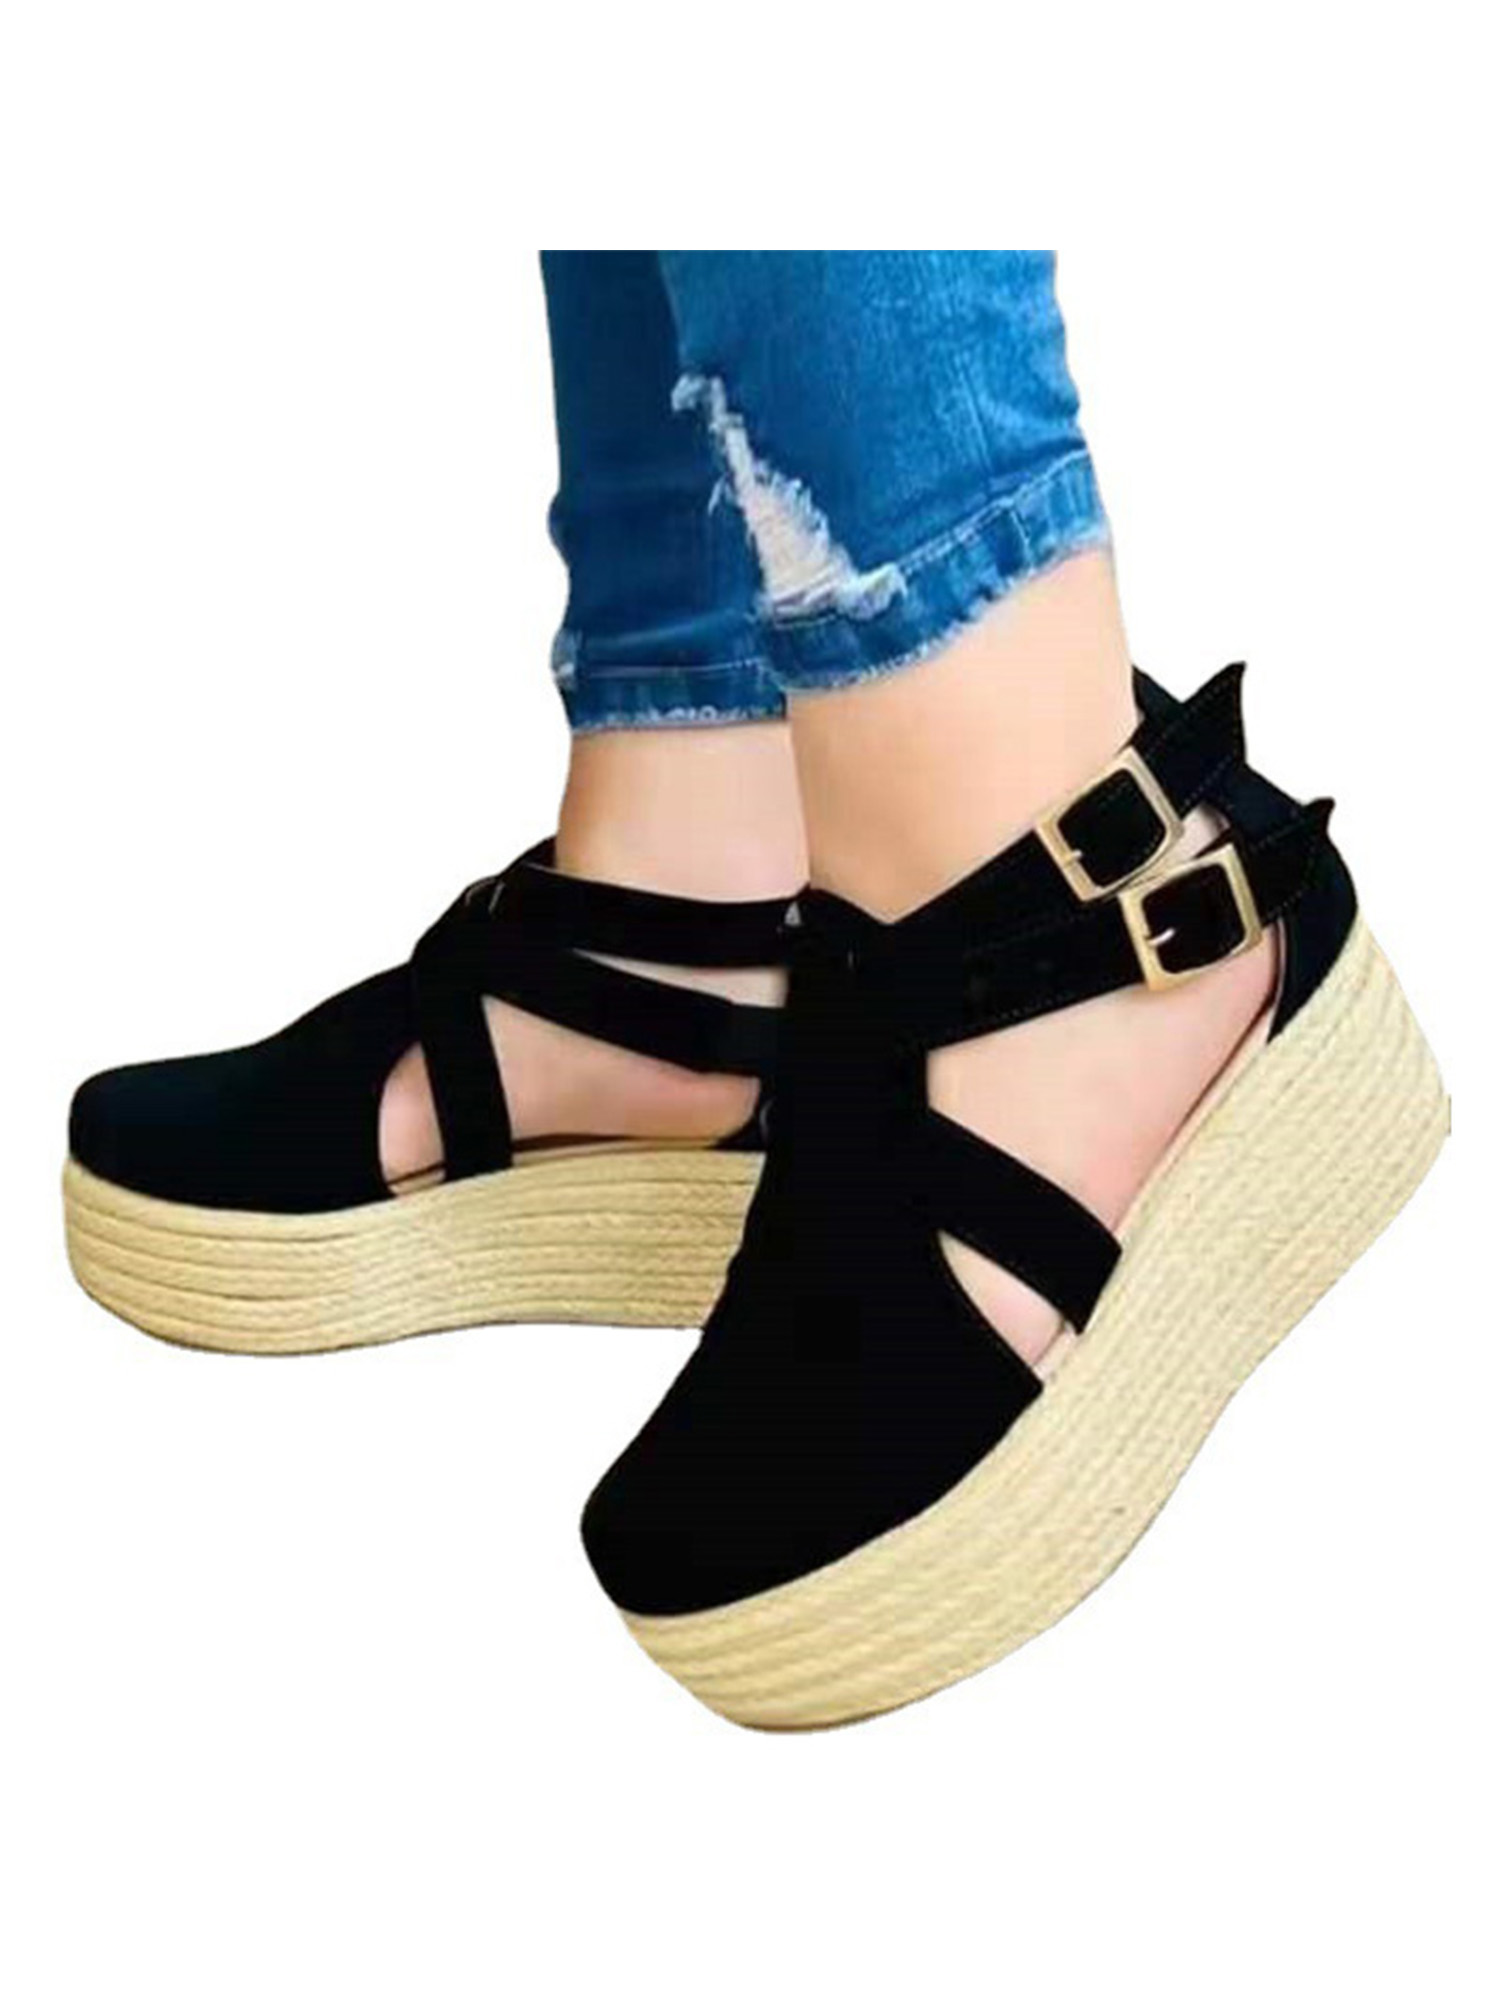 Womens Ladies Espadrille Wedge Buckle Summer Casual Mules Sandals Shoes Size 4-7